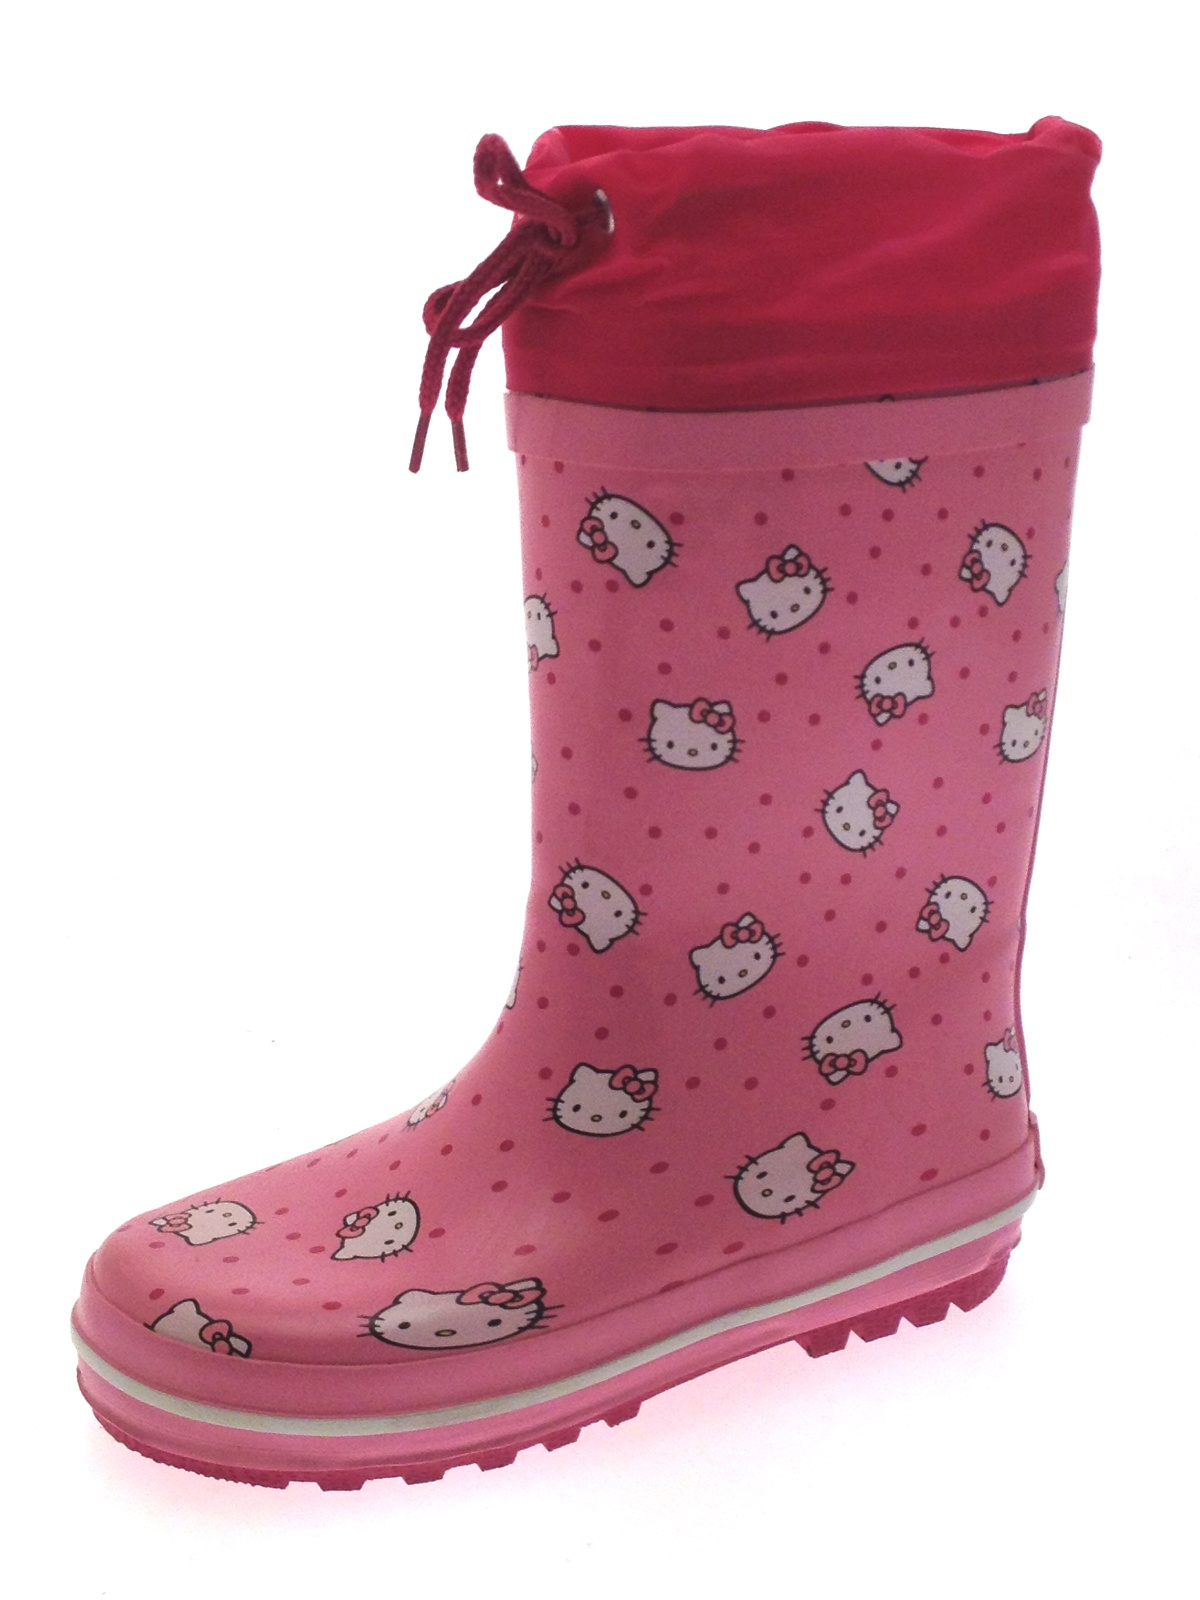 af5f62798 Hello Kitty Tie Top Rubber Wellington Boots Snow Rain Boots Girls ...